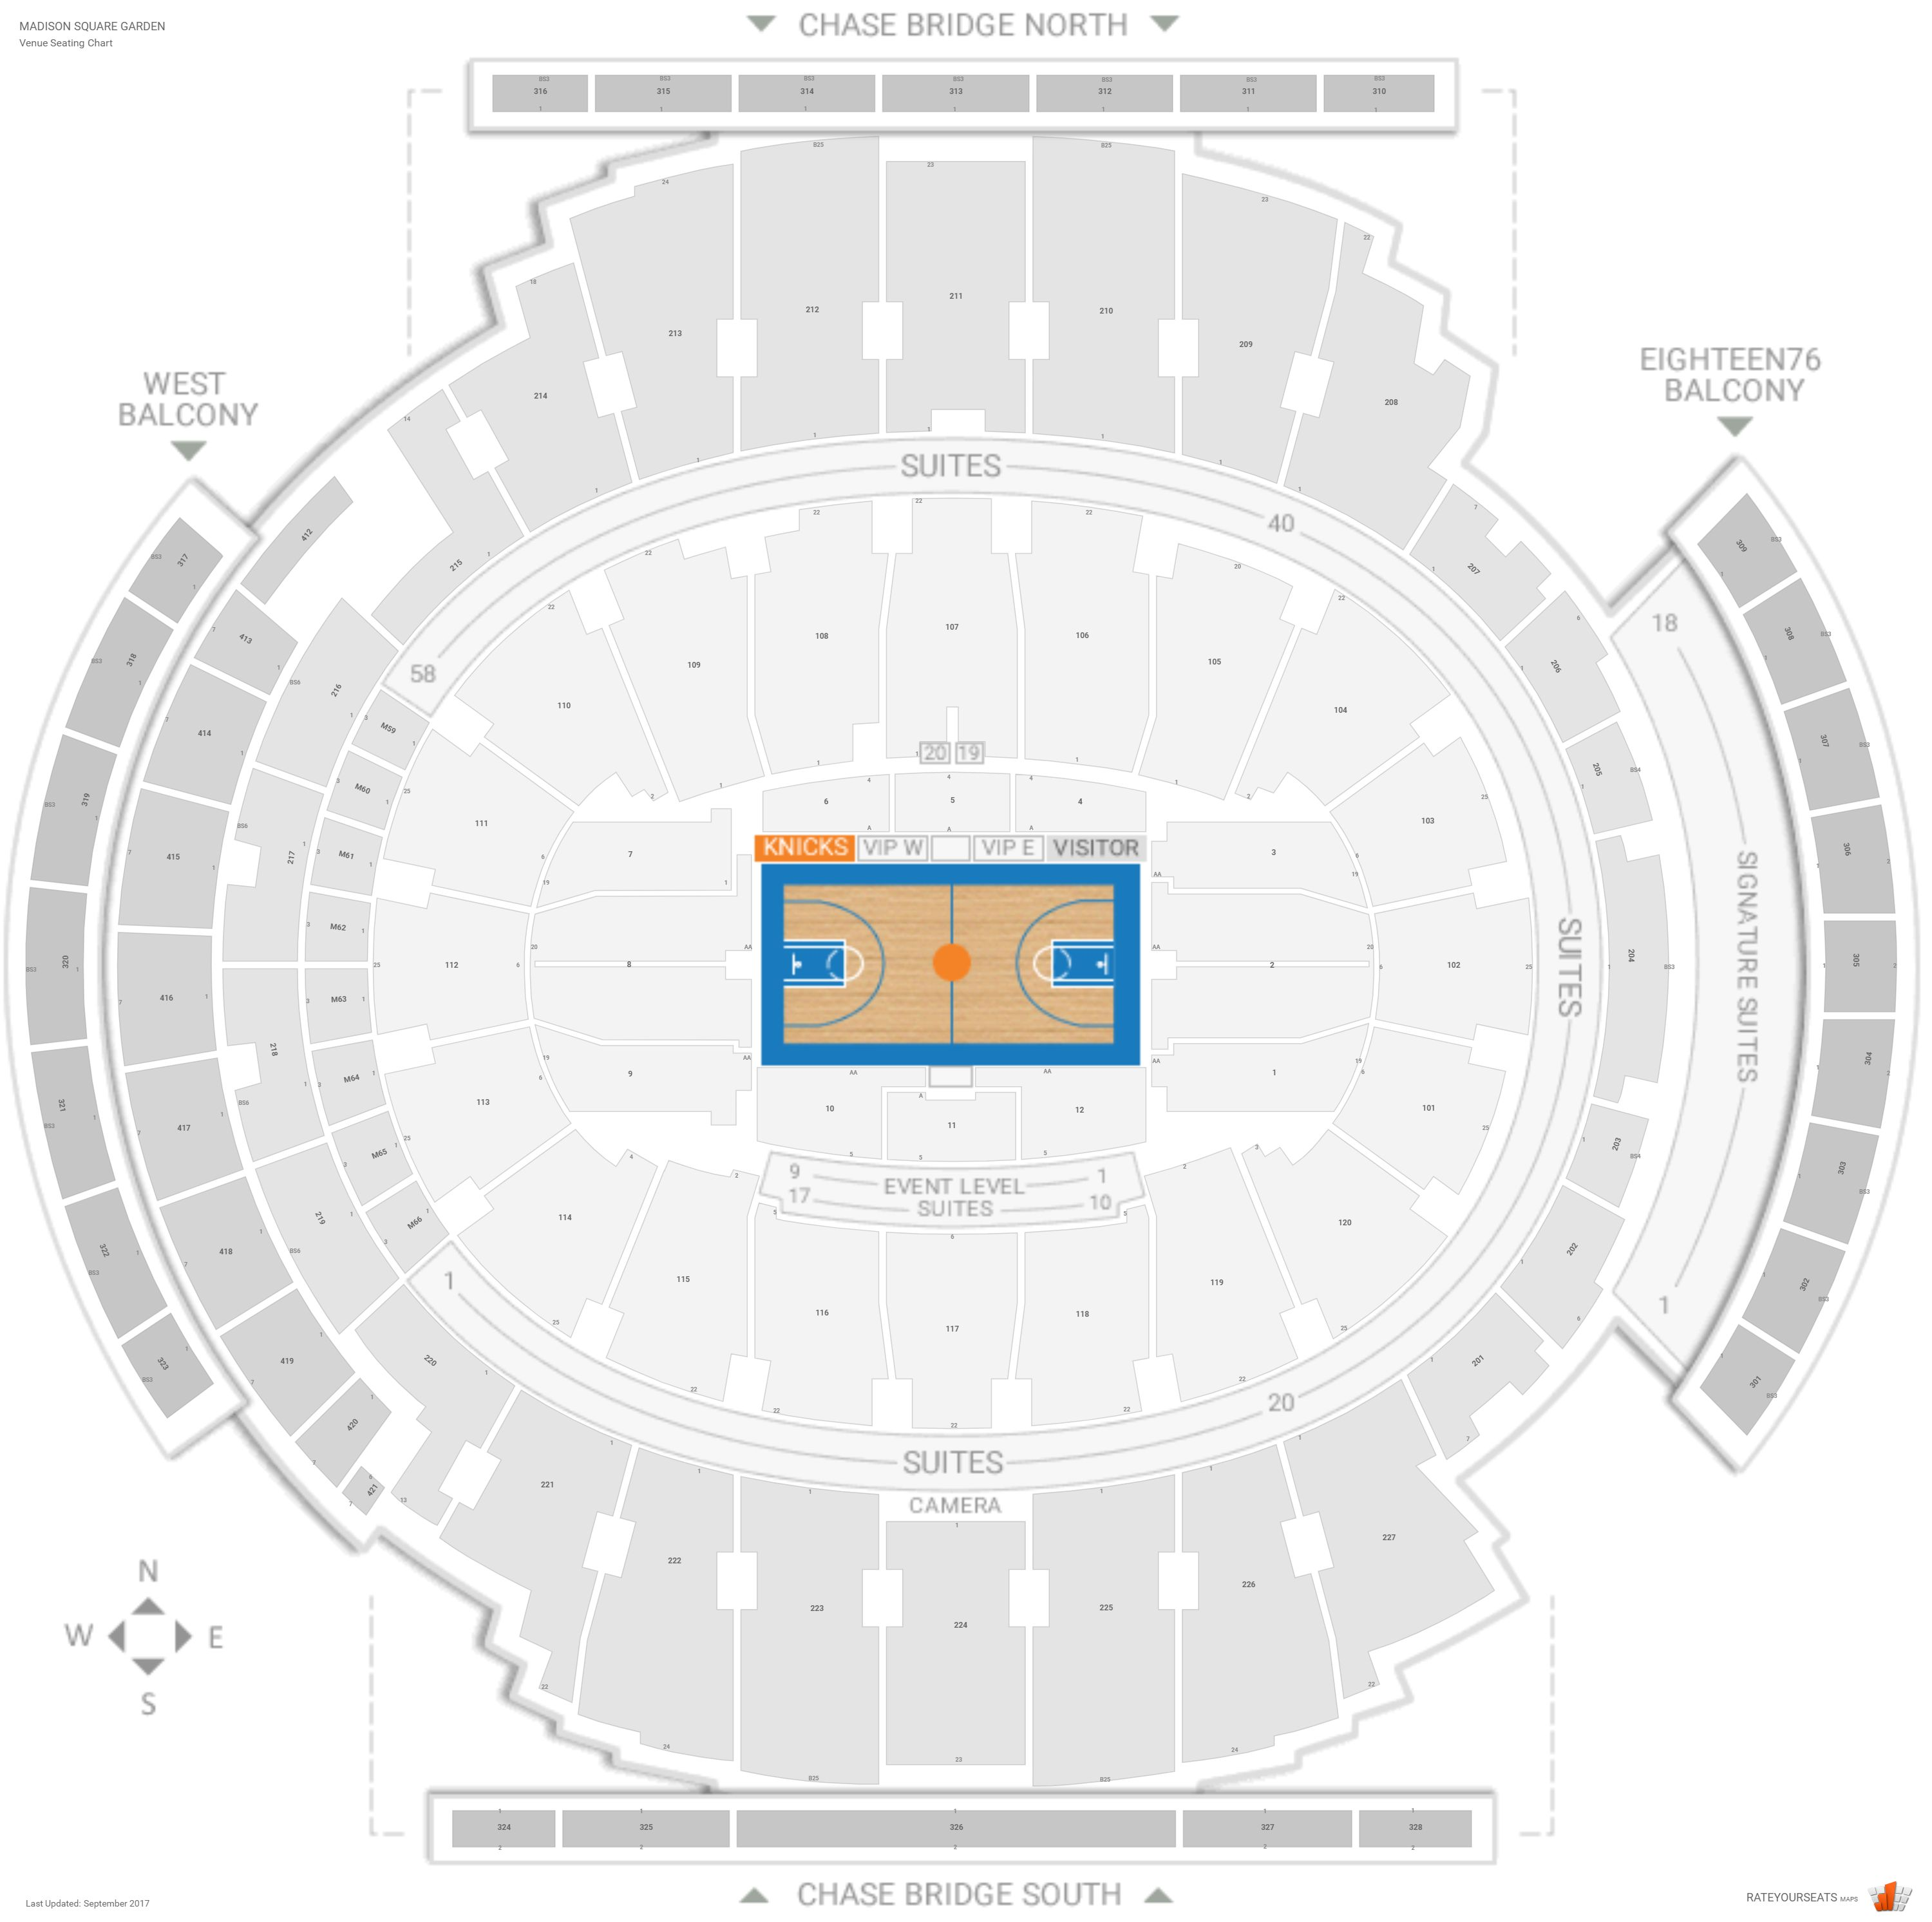 Madison Square Garden: New York Knicks Seating Guide